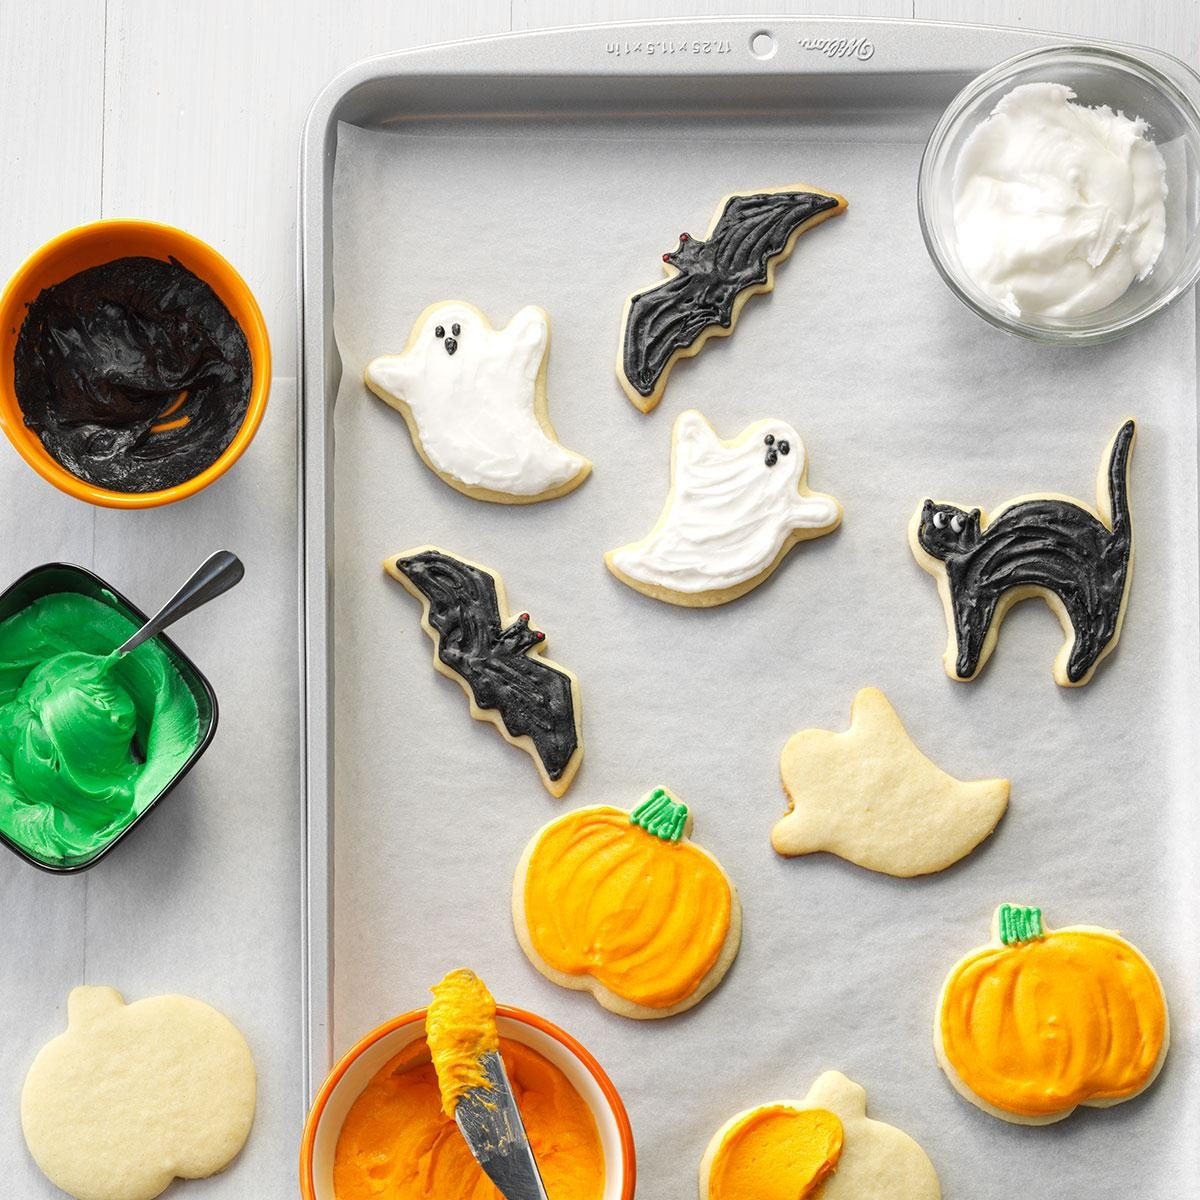 30 Favorite Halloween Cookies | Taste of Home